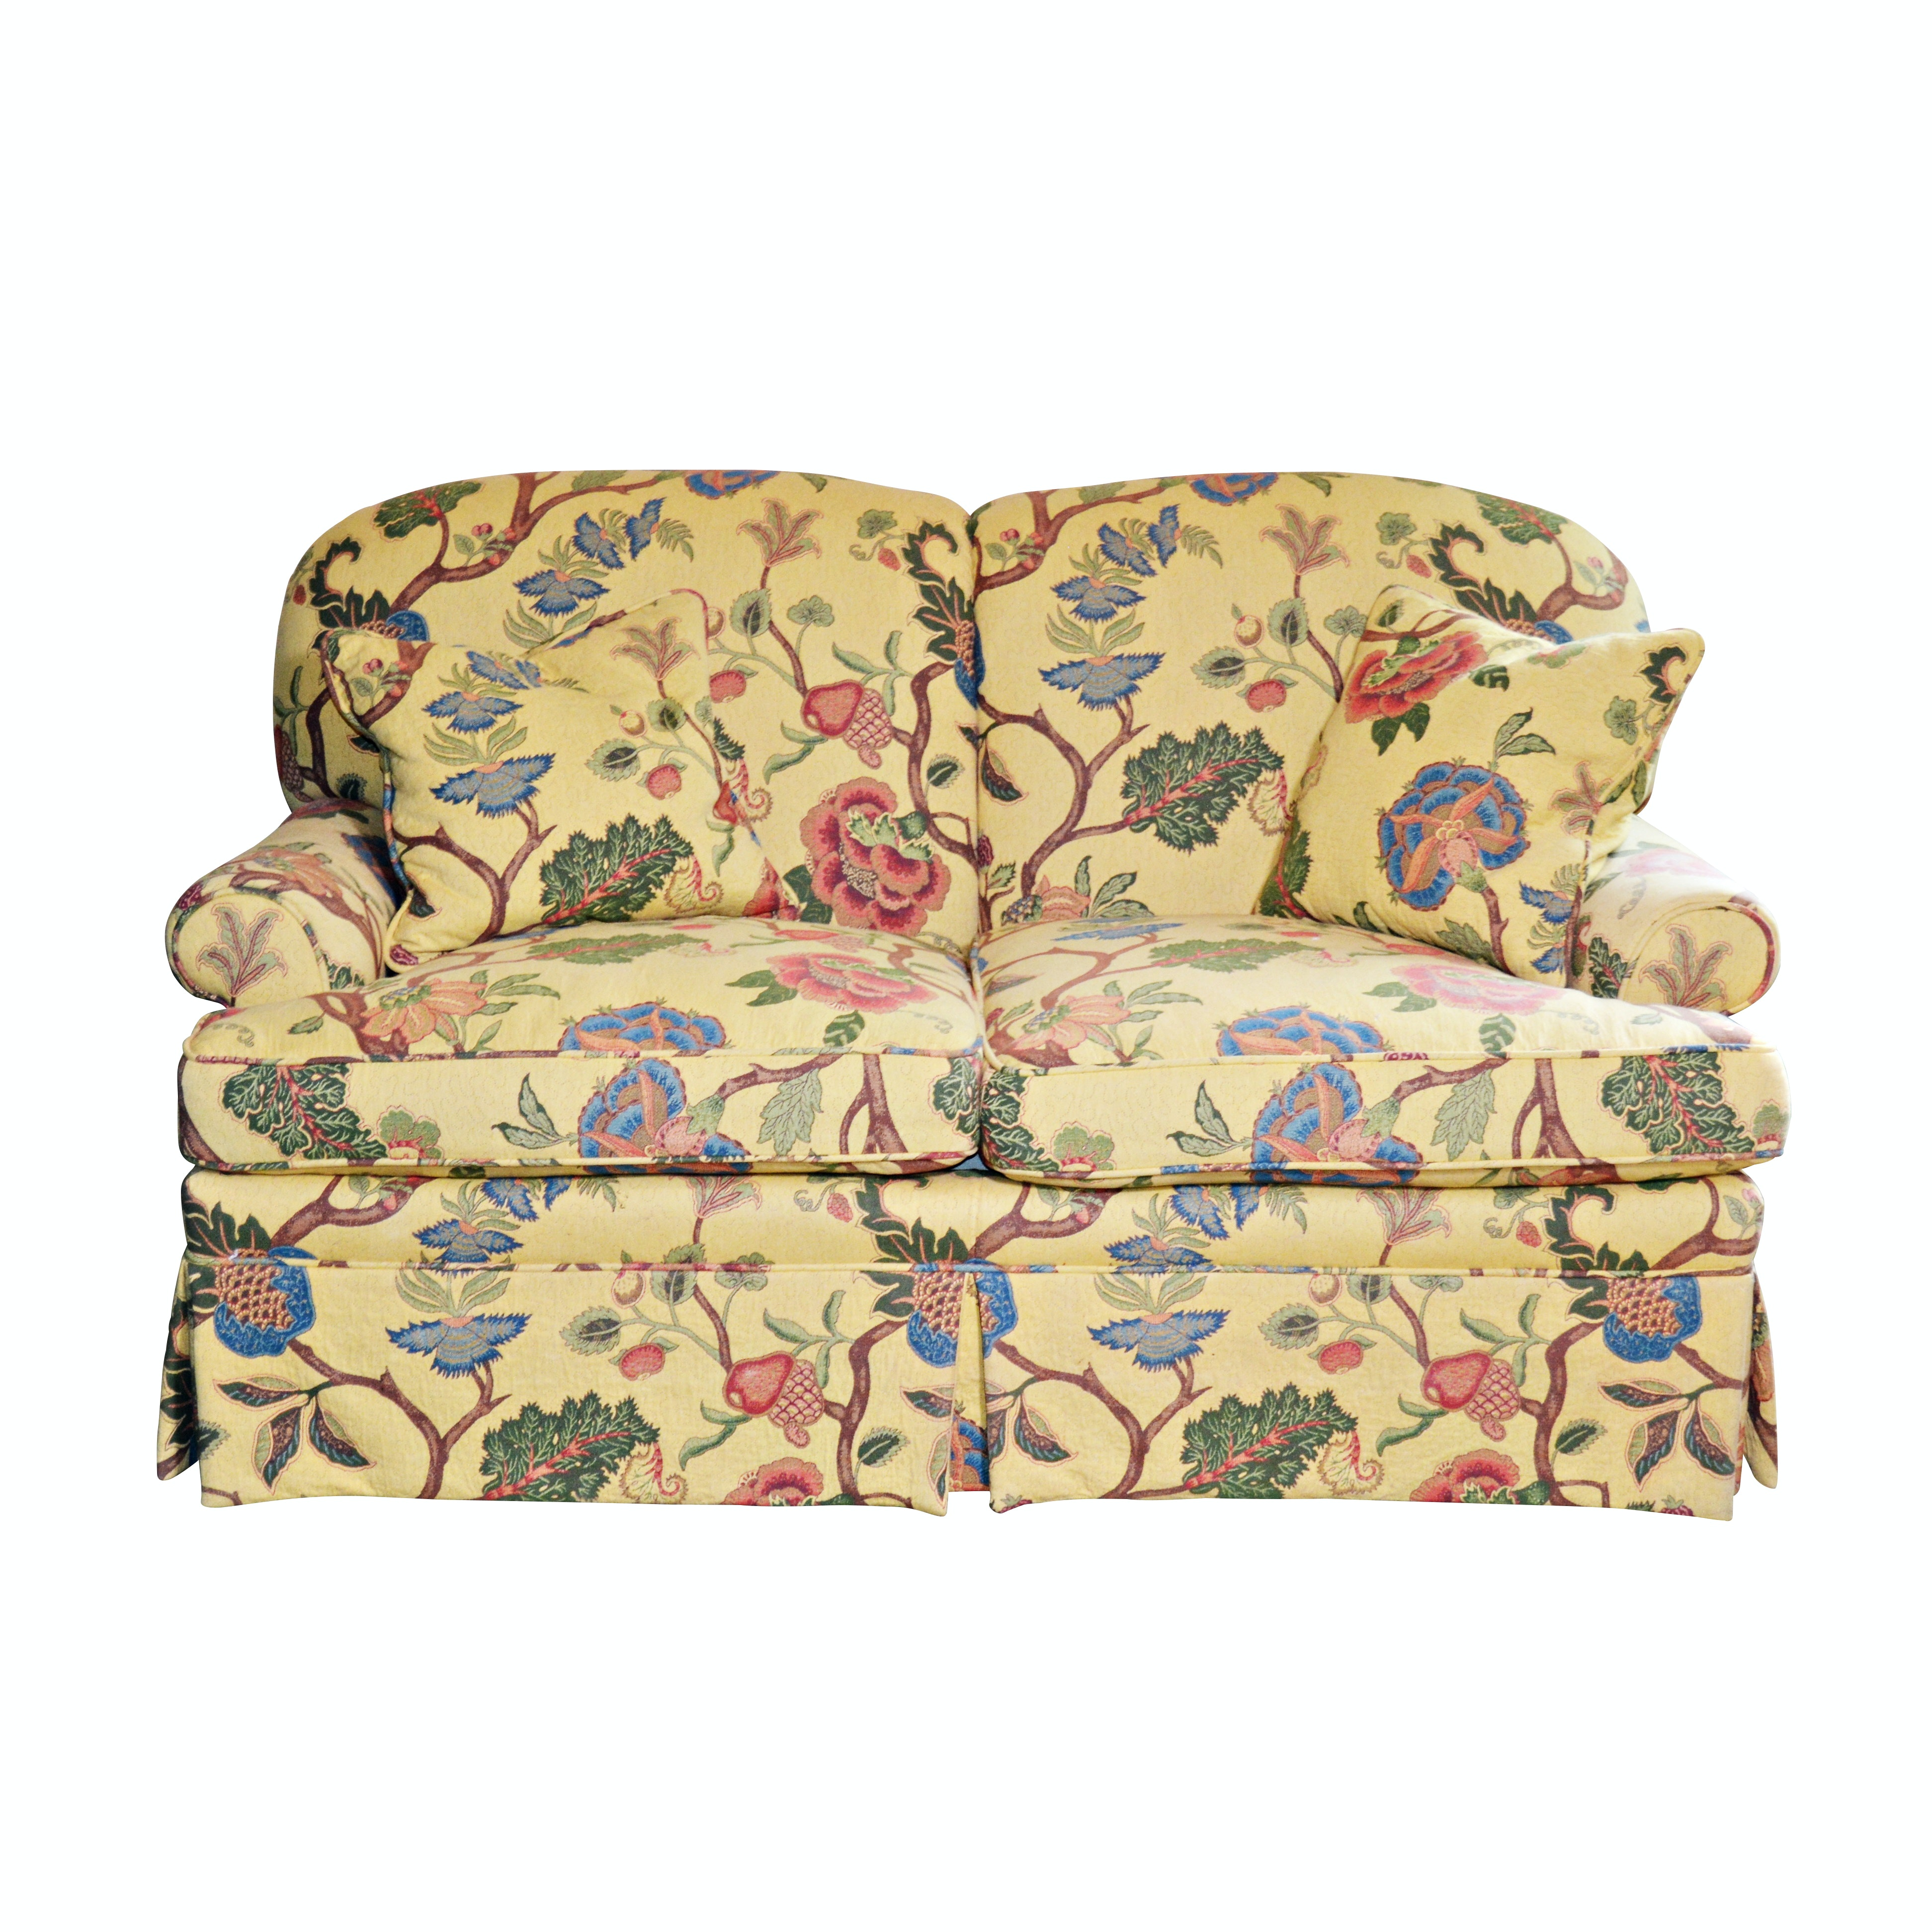 Large Floral Print Upholstered Loveseat, Late 20th Century